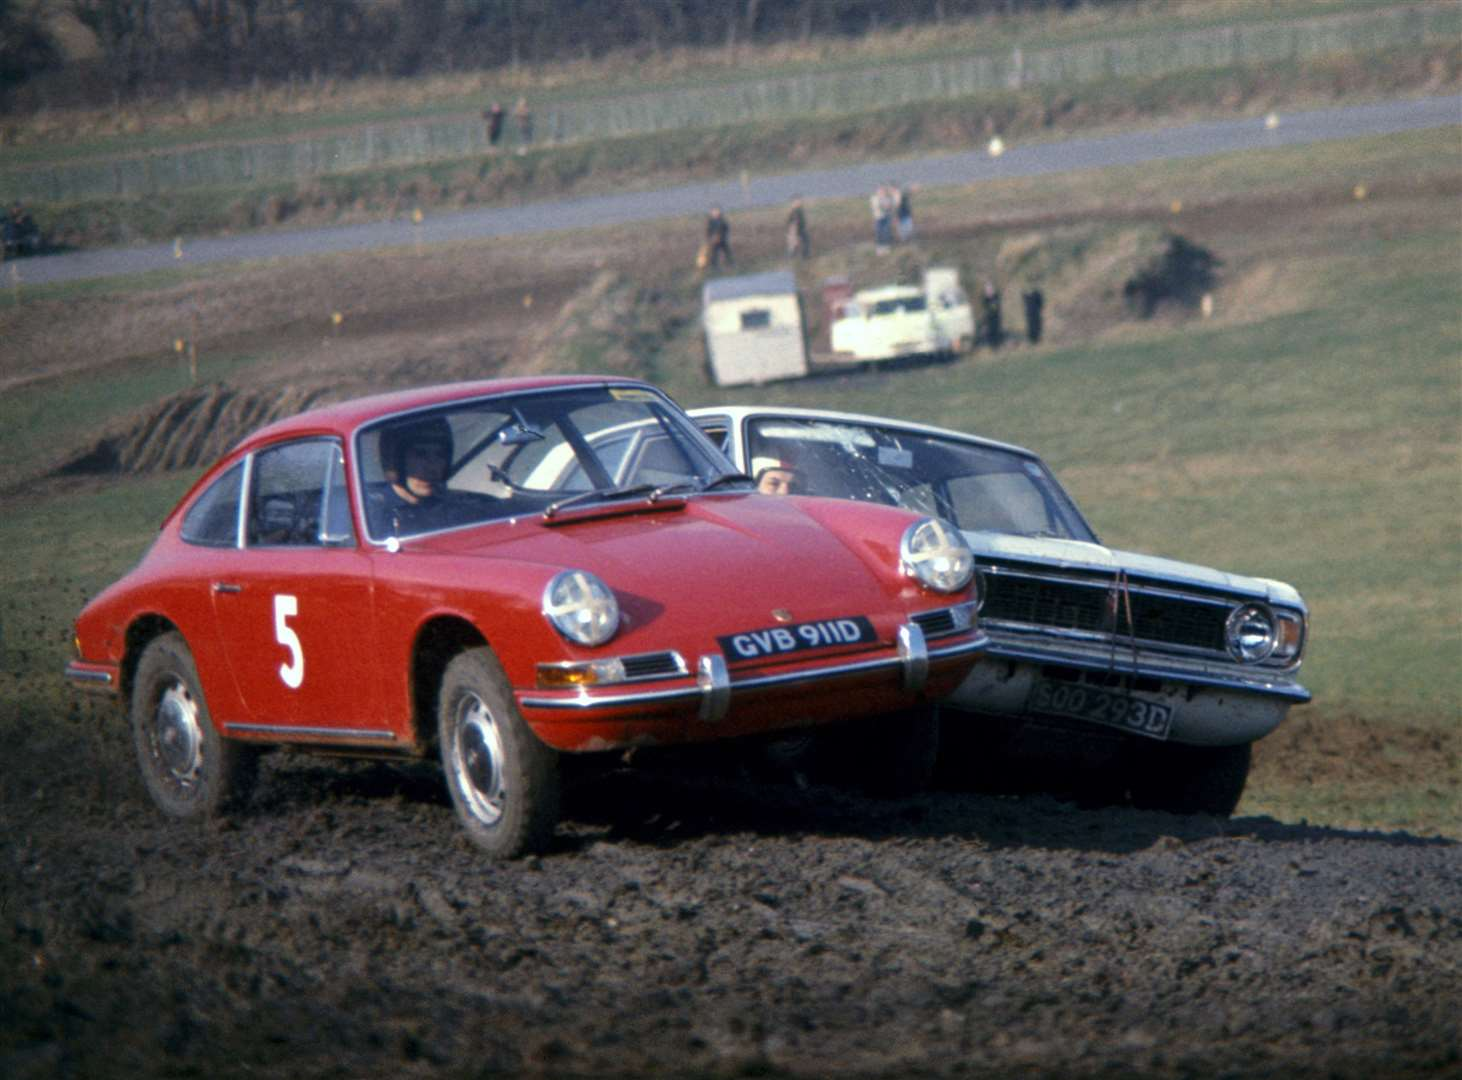 Porsche driver Vic Elford won the first-ever rallycross event at Lydden Hill in 1967. Picture: LAT